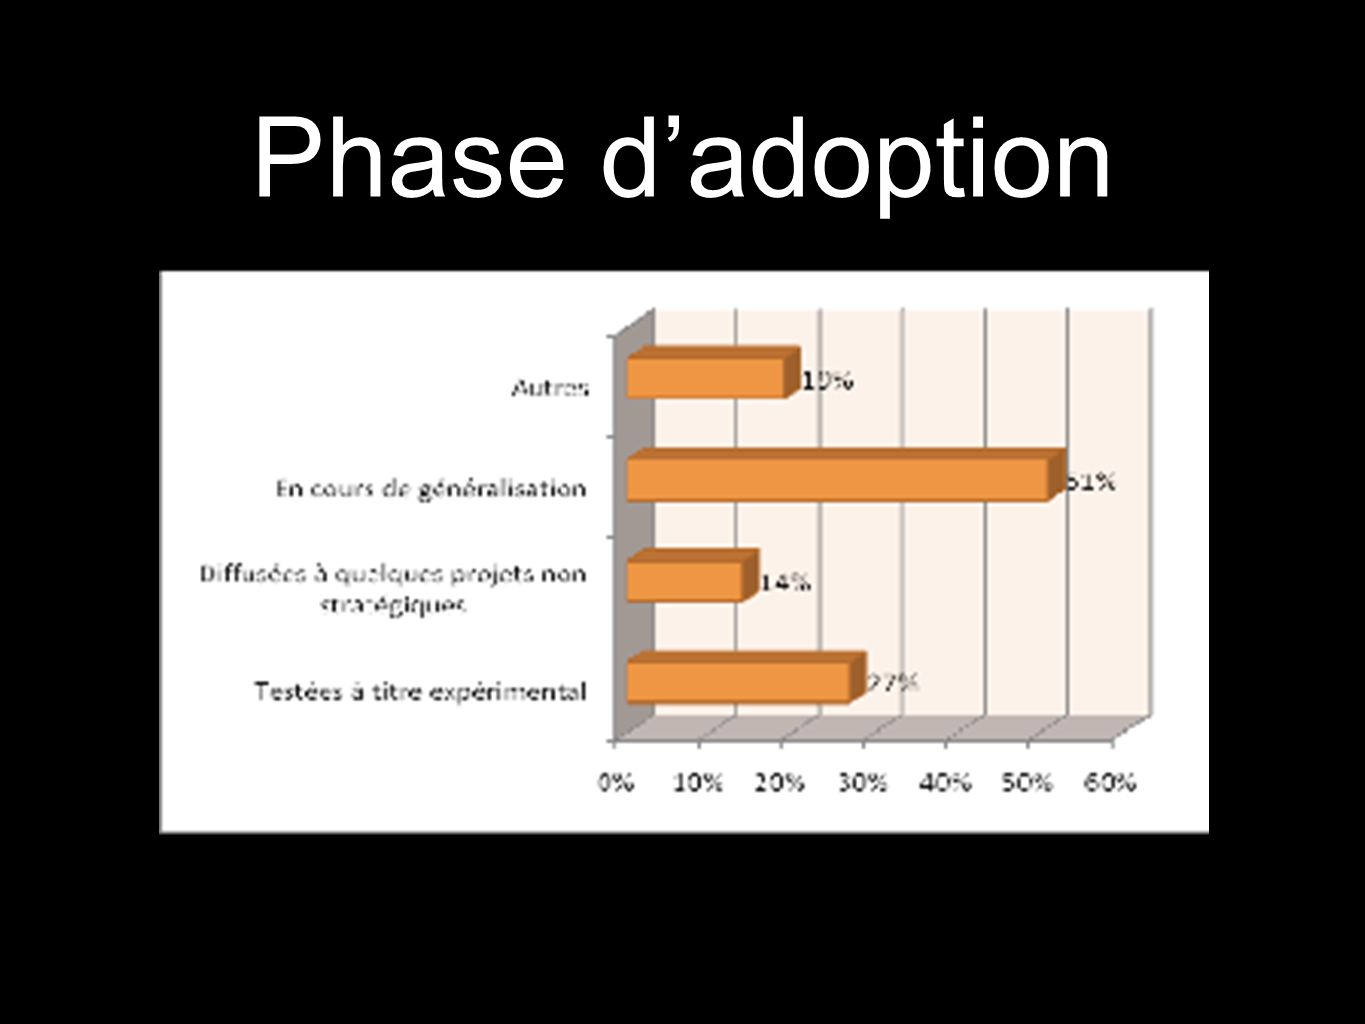 Phase d'adoption